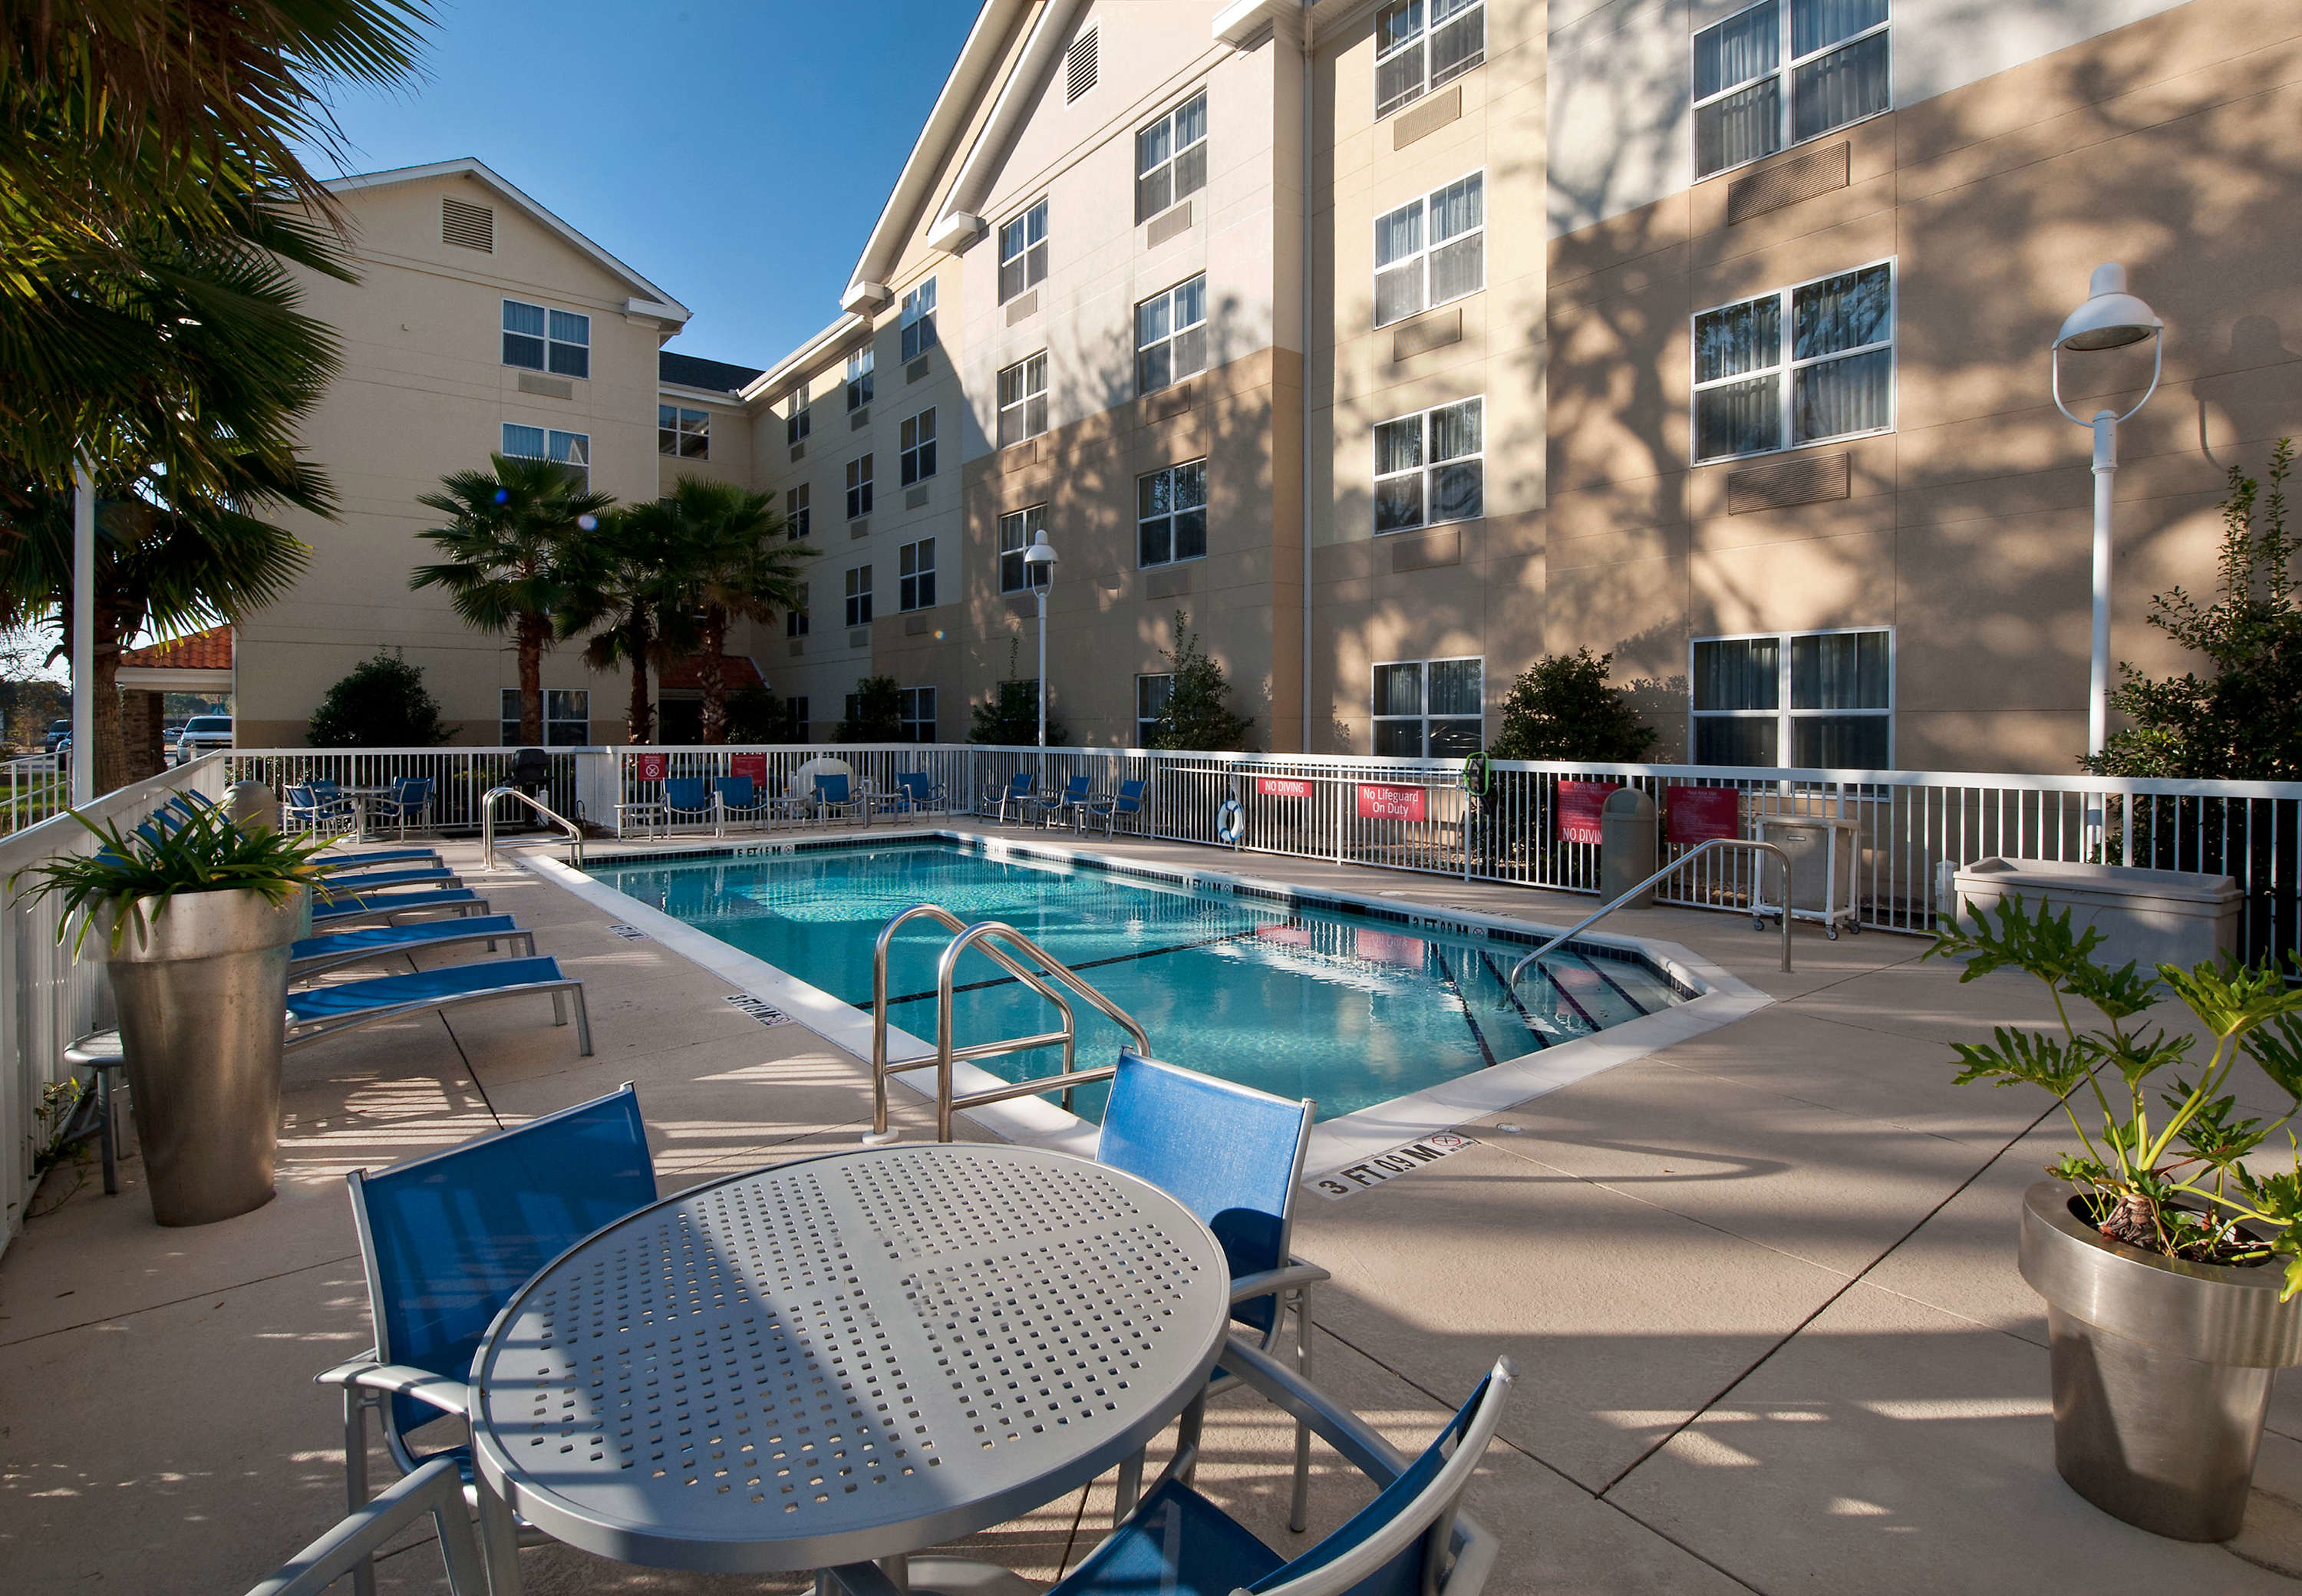 TownePlace Suites by Marriott Pensacola image 3